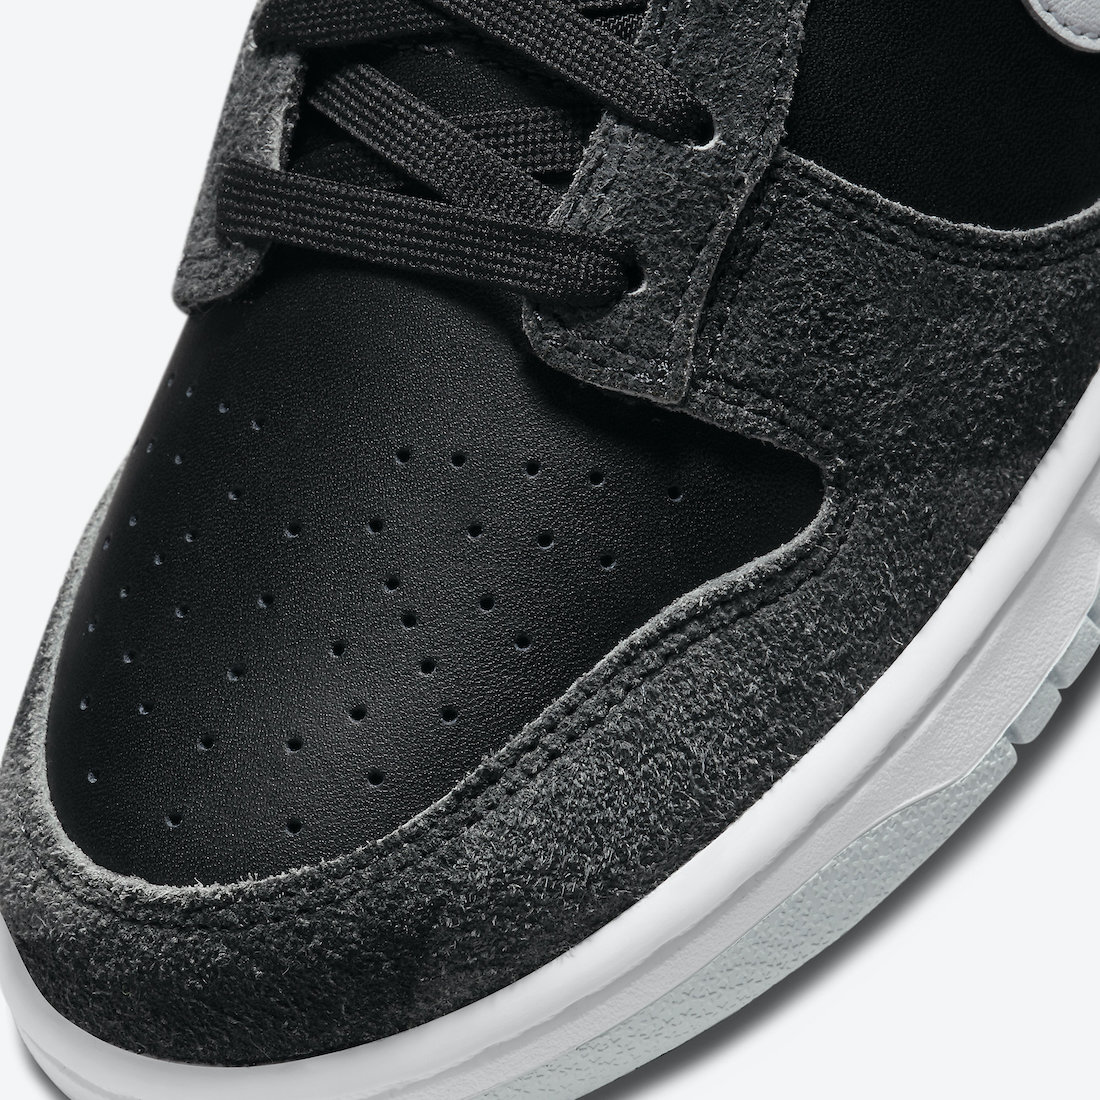 Nike-Dunk-Low-Animal-Black-DH7913-001-Release-Date-6